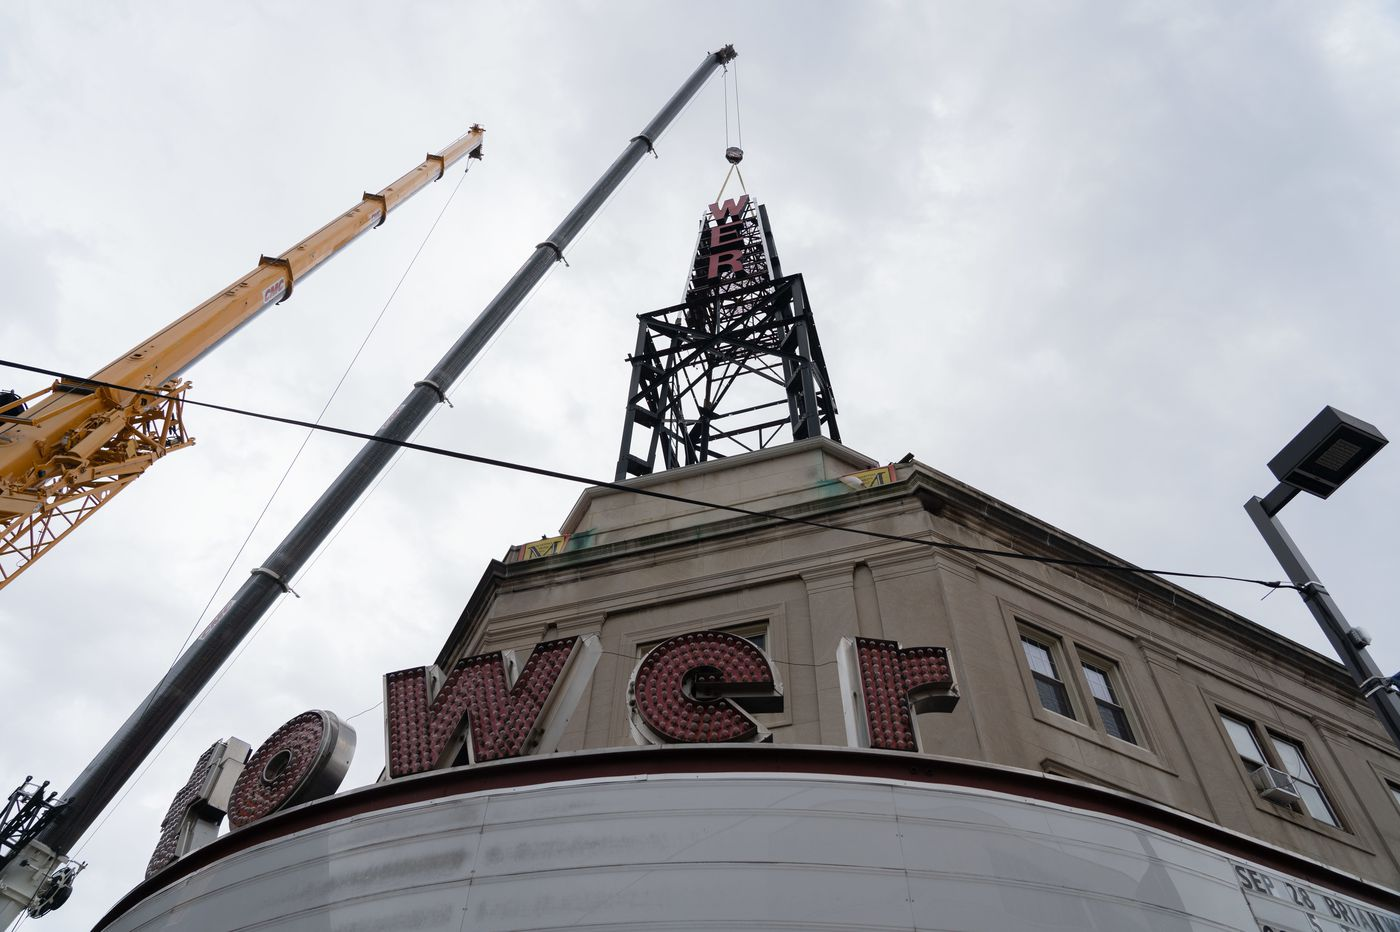 Upper Darby's Tower Theater Sign Comes Down, Museum Gets Iconic Sphere and Letters